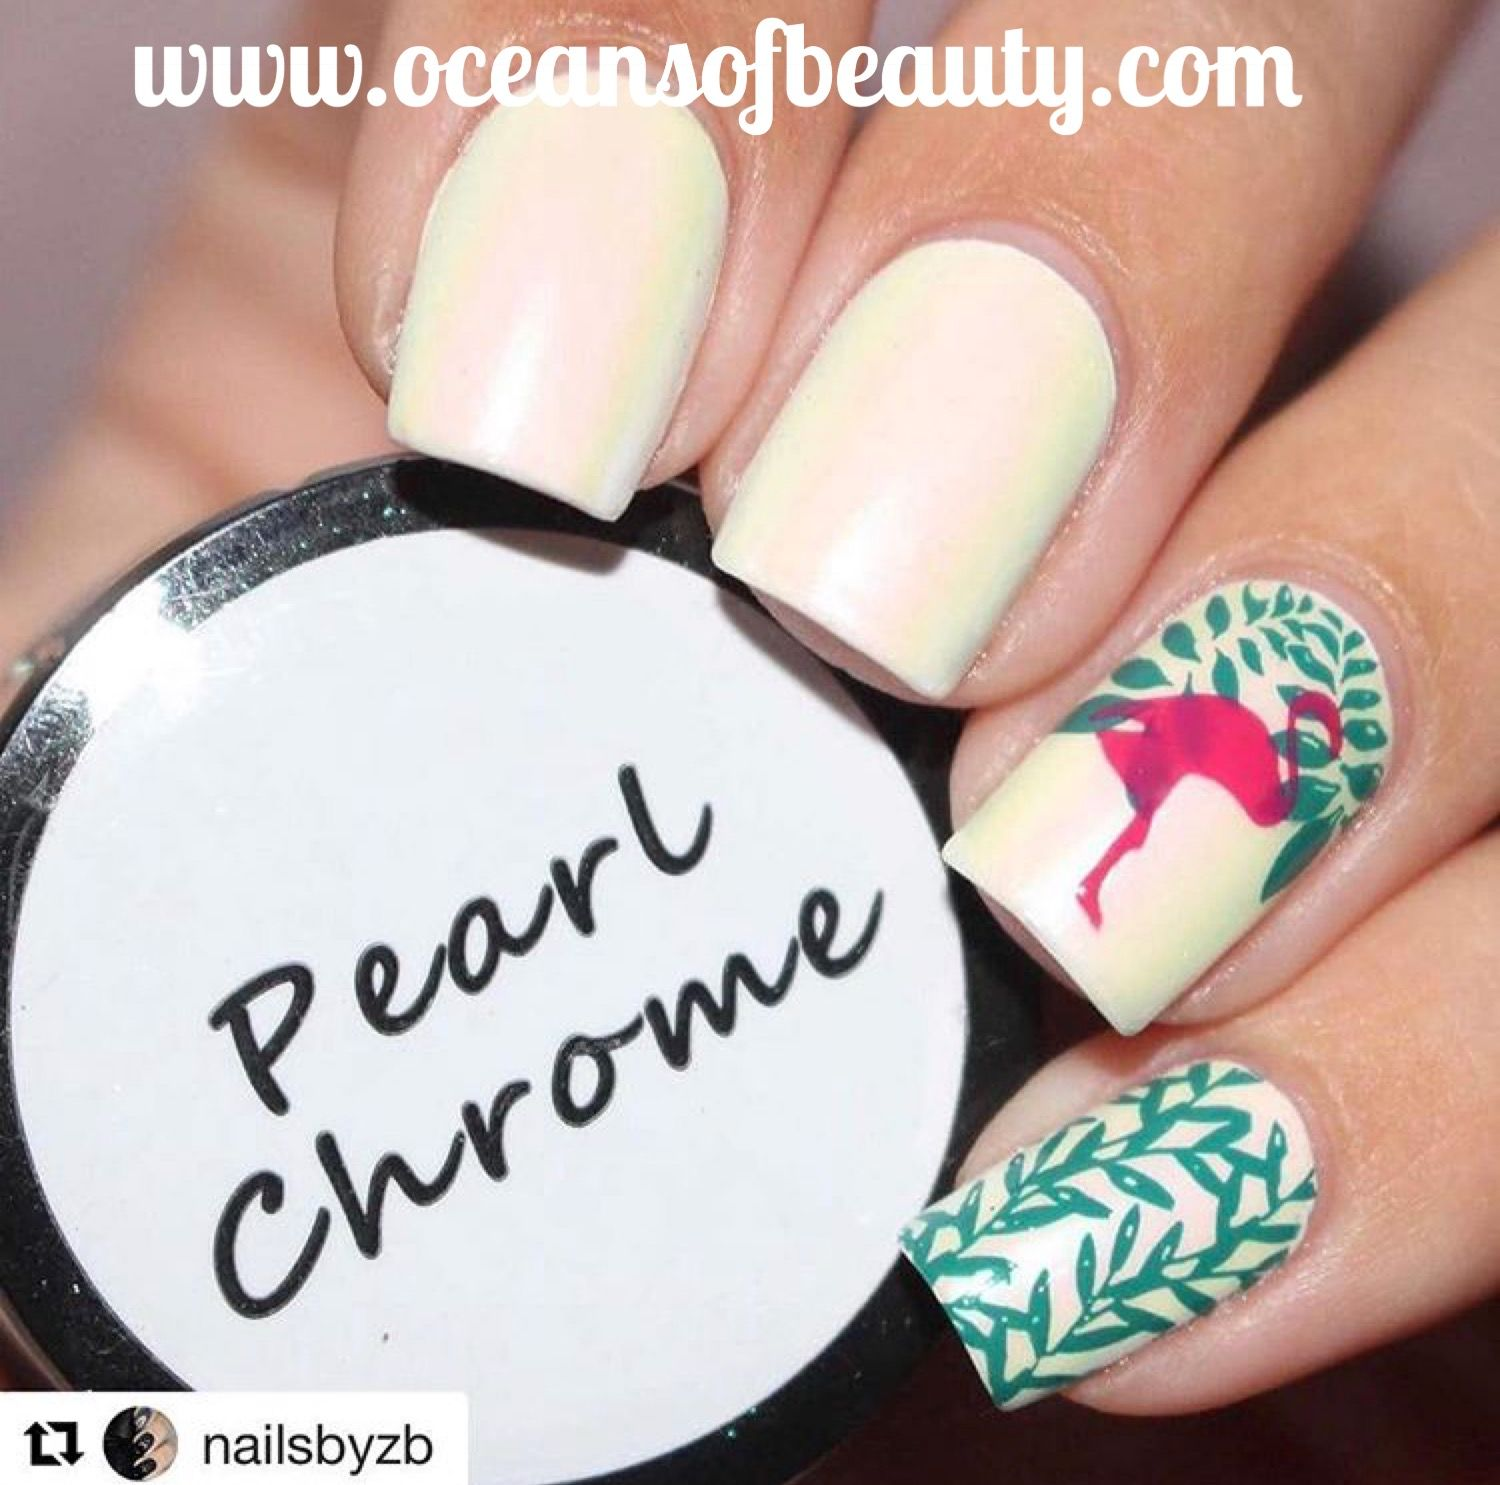 How To Chrome Nails At Home - Best Nail Design 2018